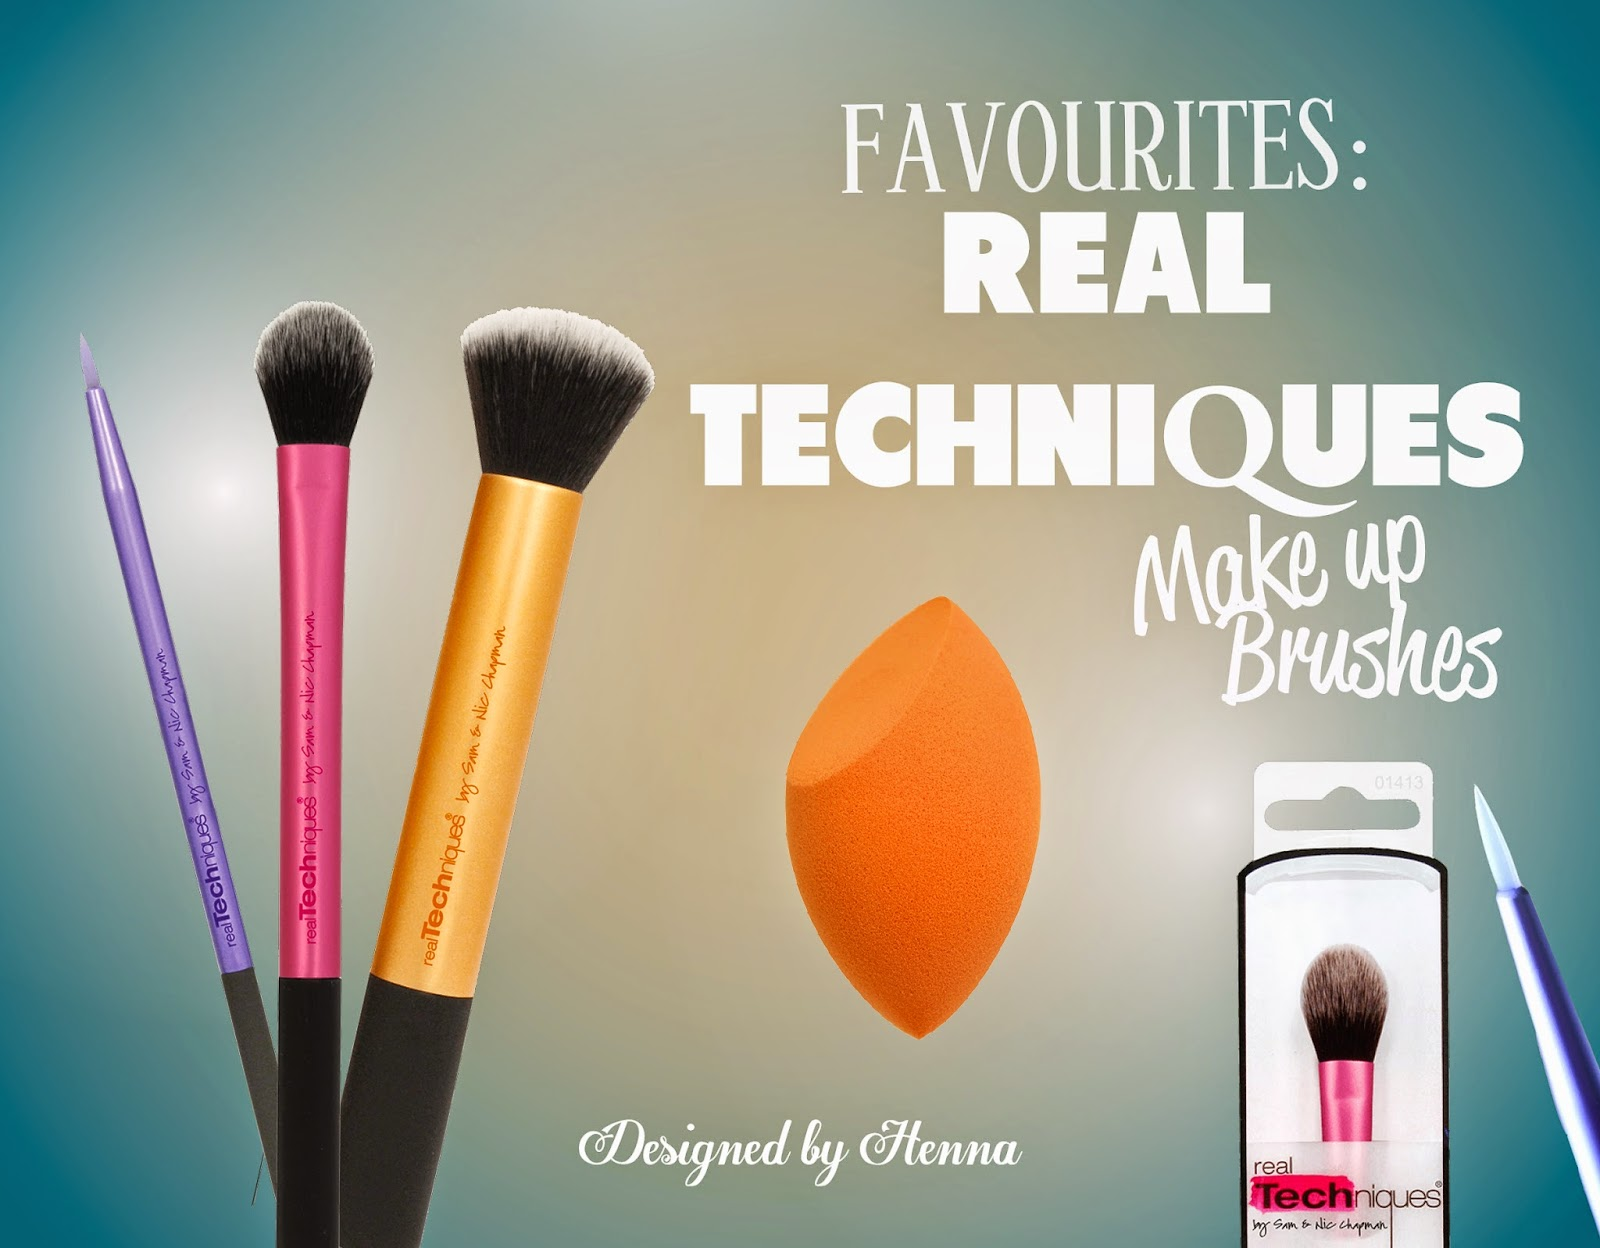 Real Techniques is a great brand for quality brushes at a fraction of the price other higher end brushes would cost. These super soft synthetic bristle ...